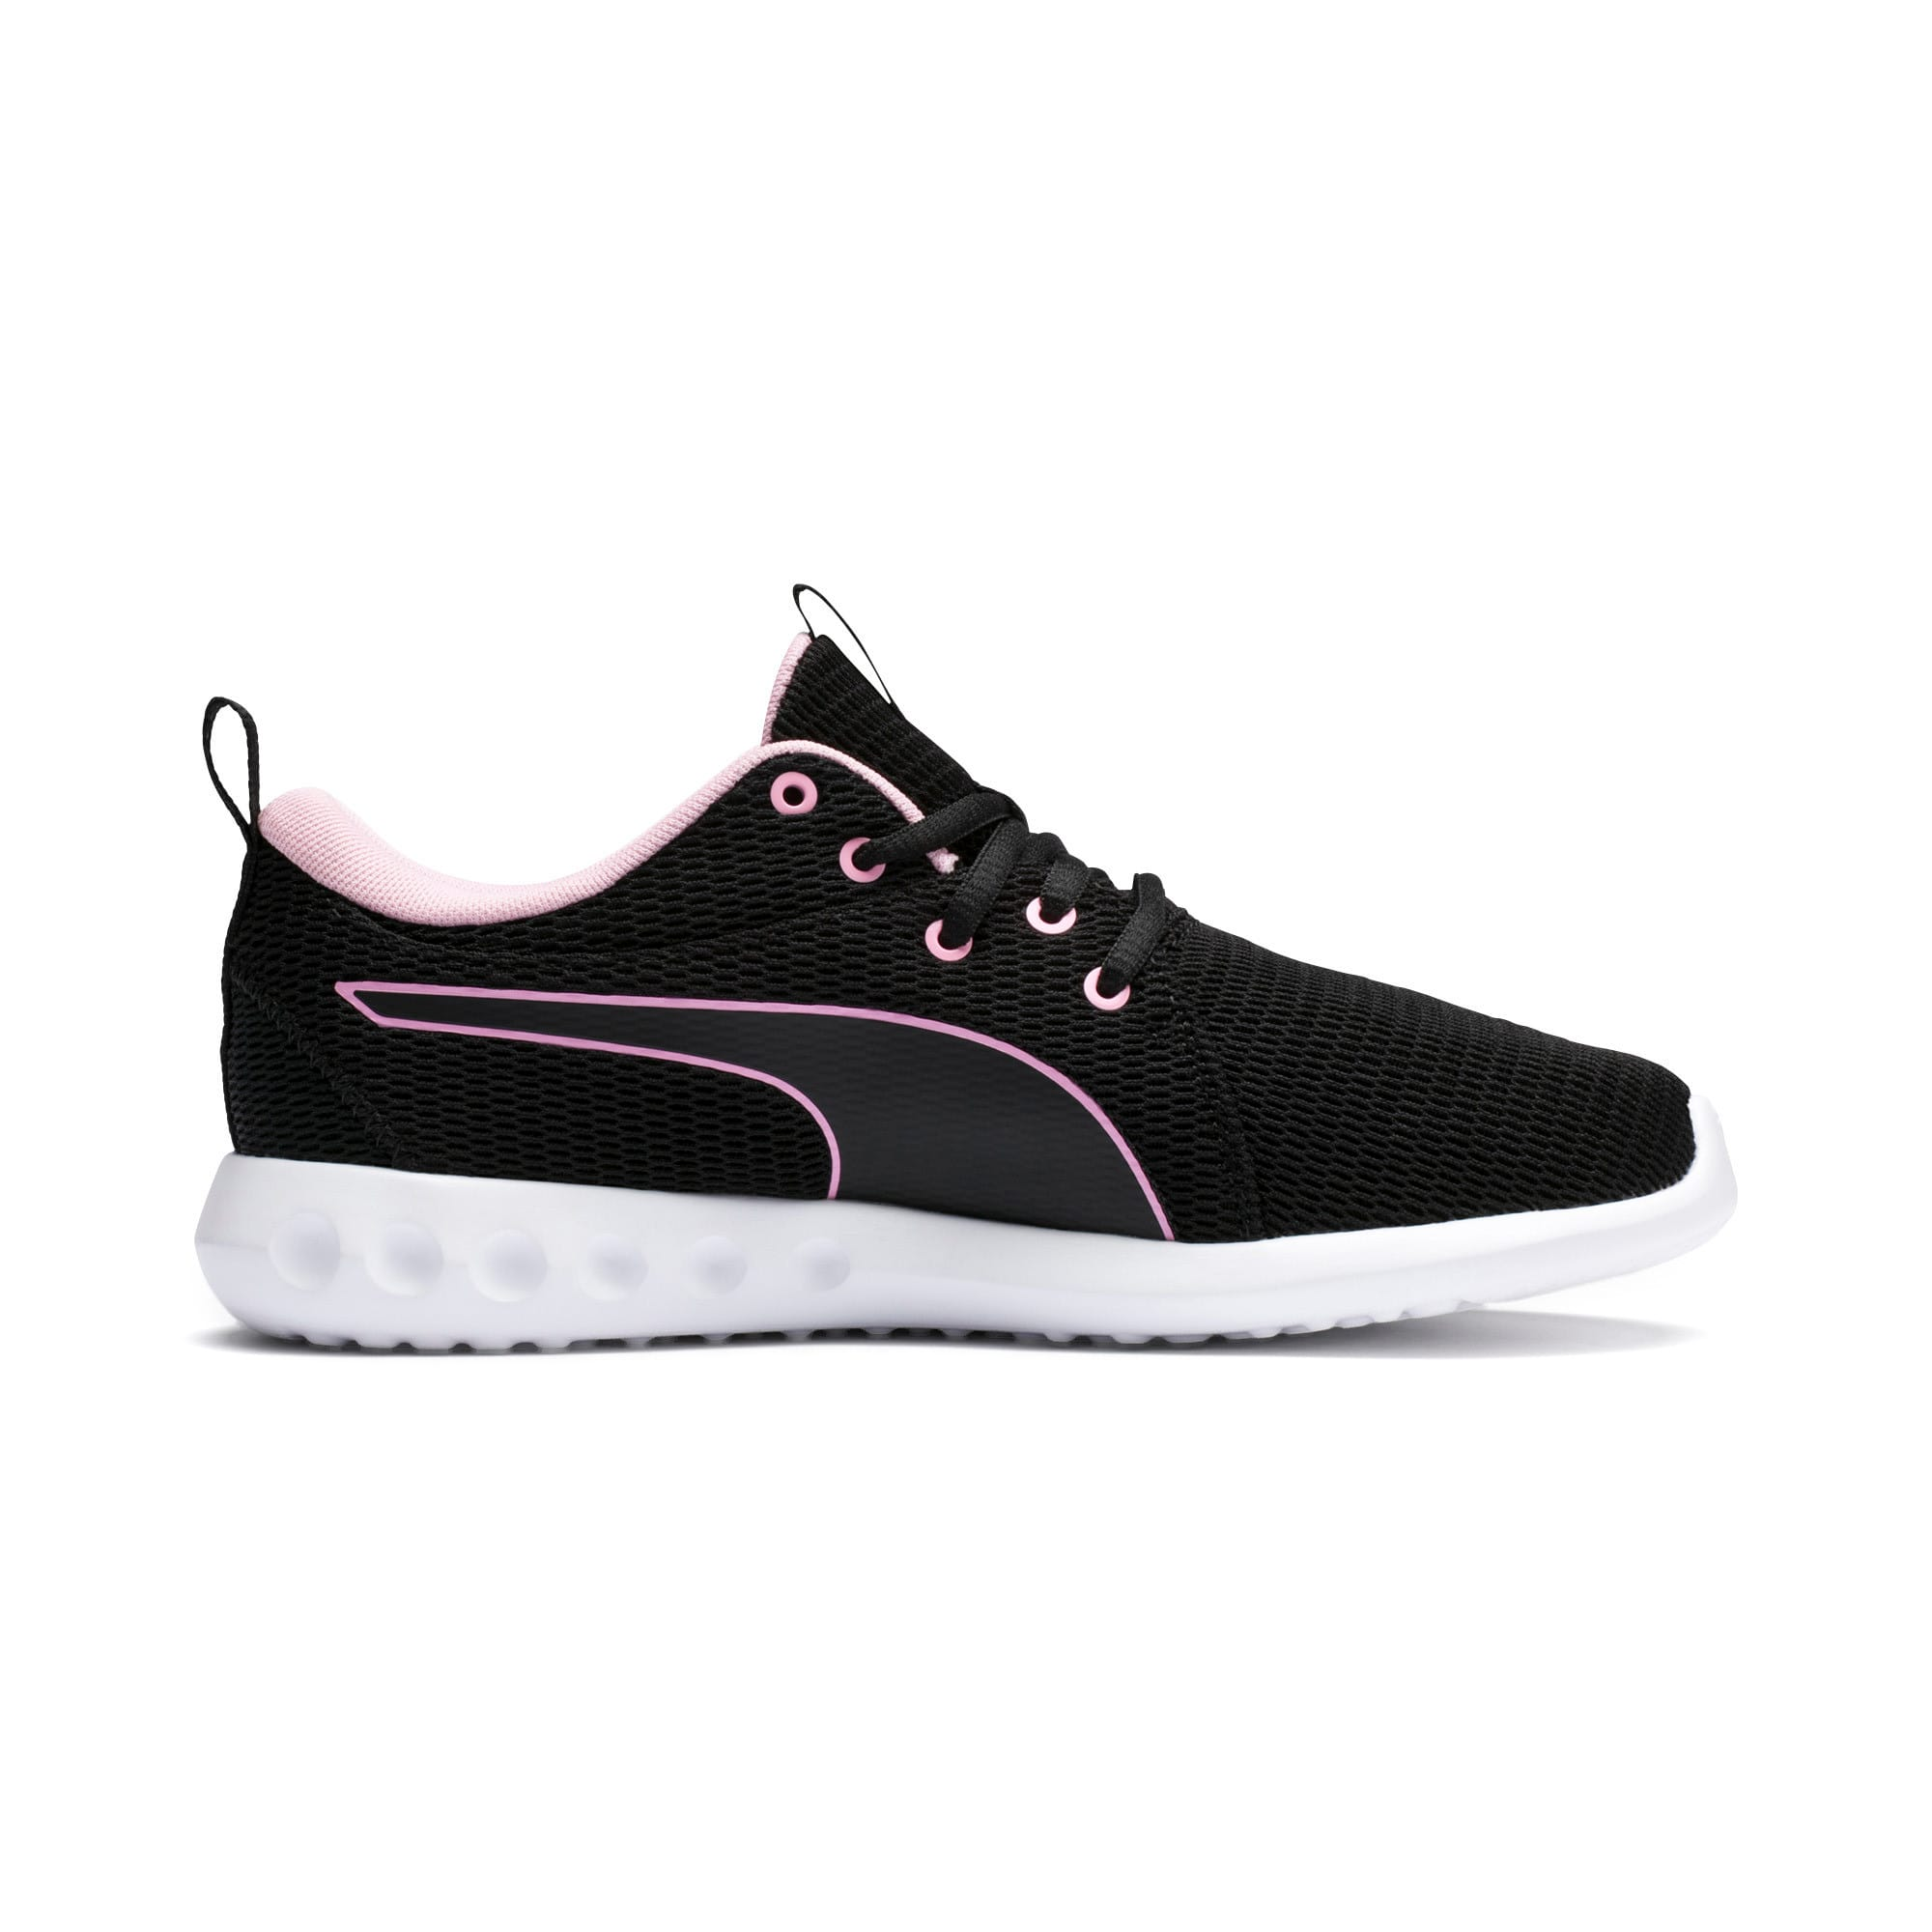 Thumbnail 5 of Carson 2 New Core Women's Training Shoes, Puma Black-Pale Pink, medium